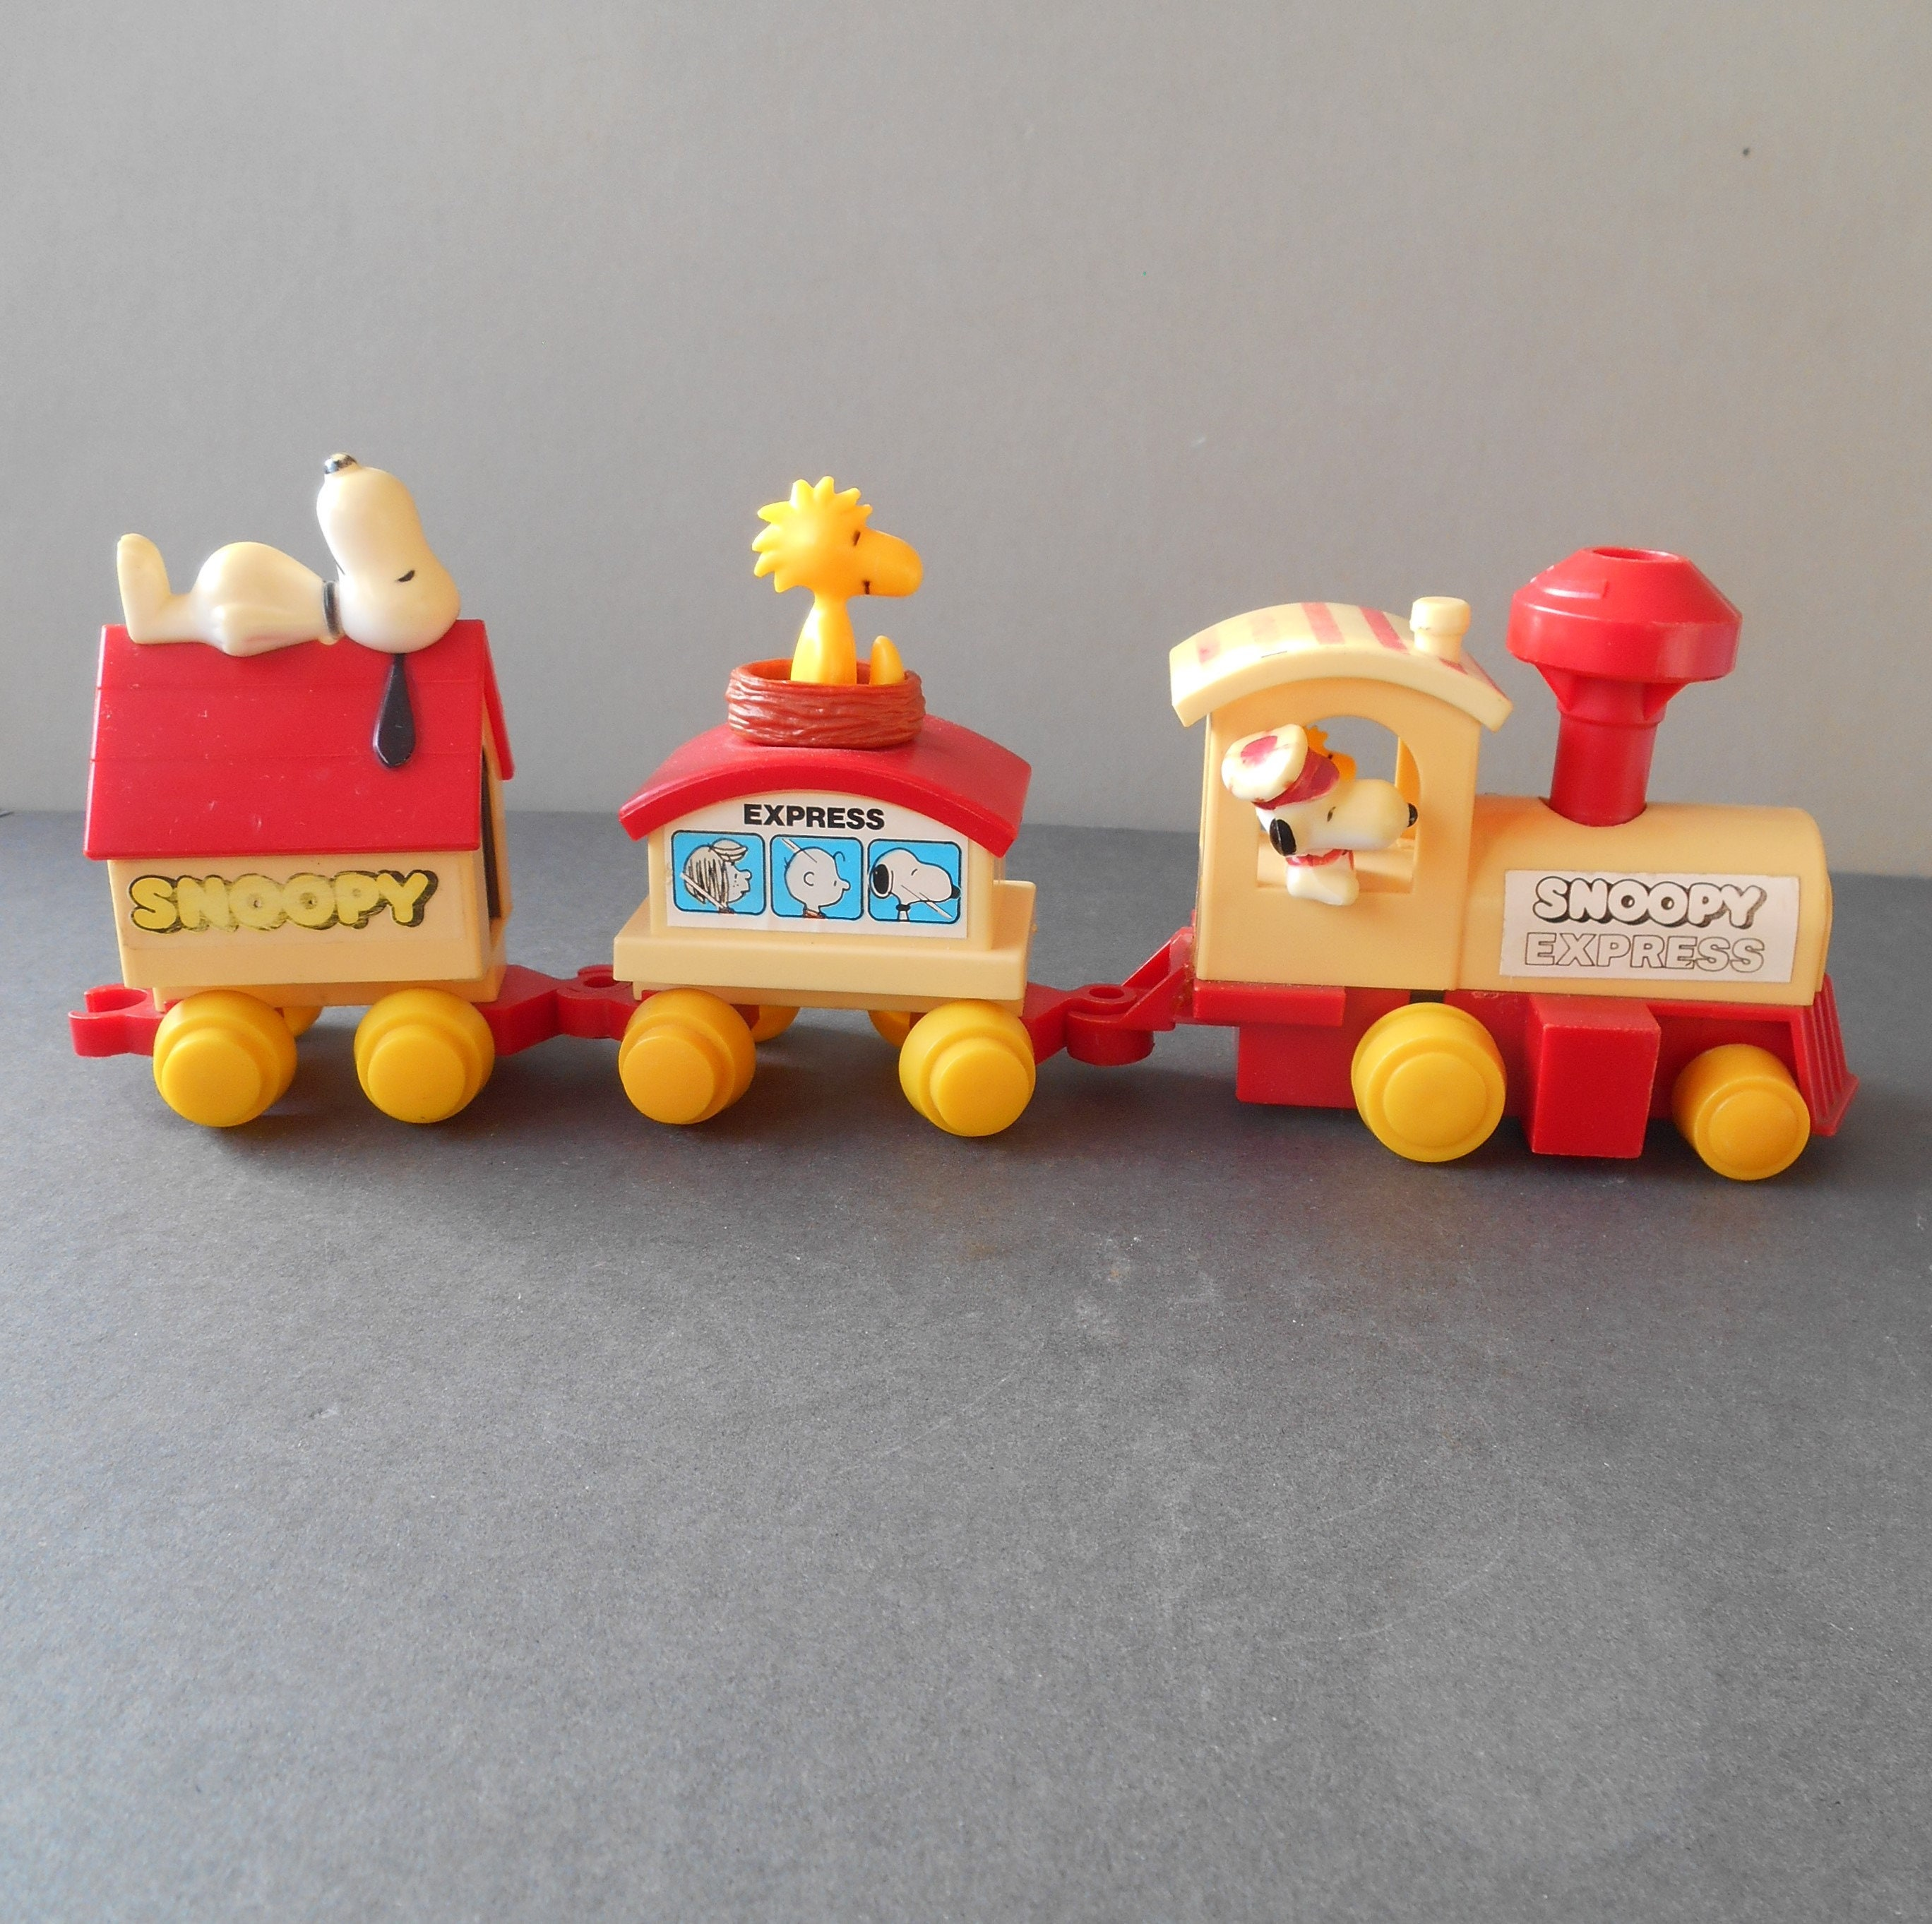 Snoopy Express Train Toy 3 Carriage Novelty Vintage Snoopy PEANUTS Charlie Brown Characters 1970s Toy